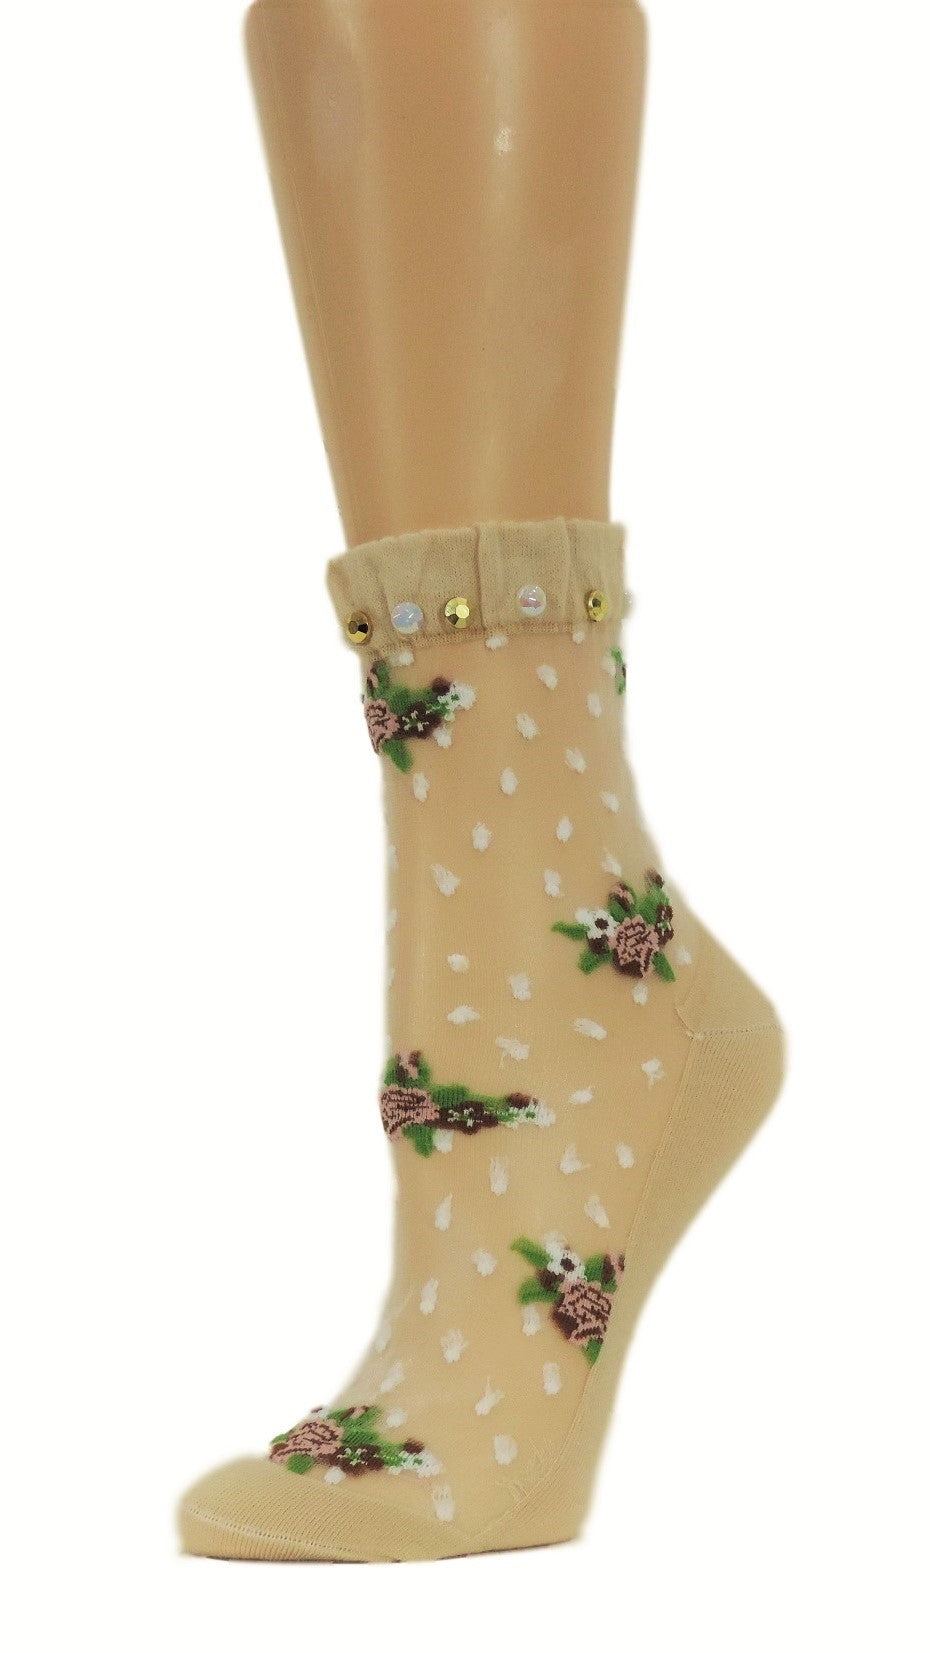 Flowers Bunch Custom Sheer Socks with beads - Global Trendz Fashion®